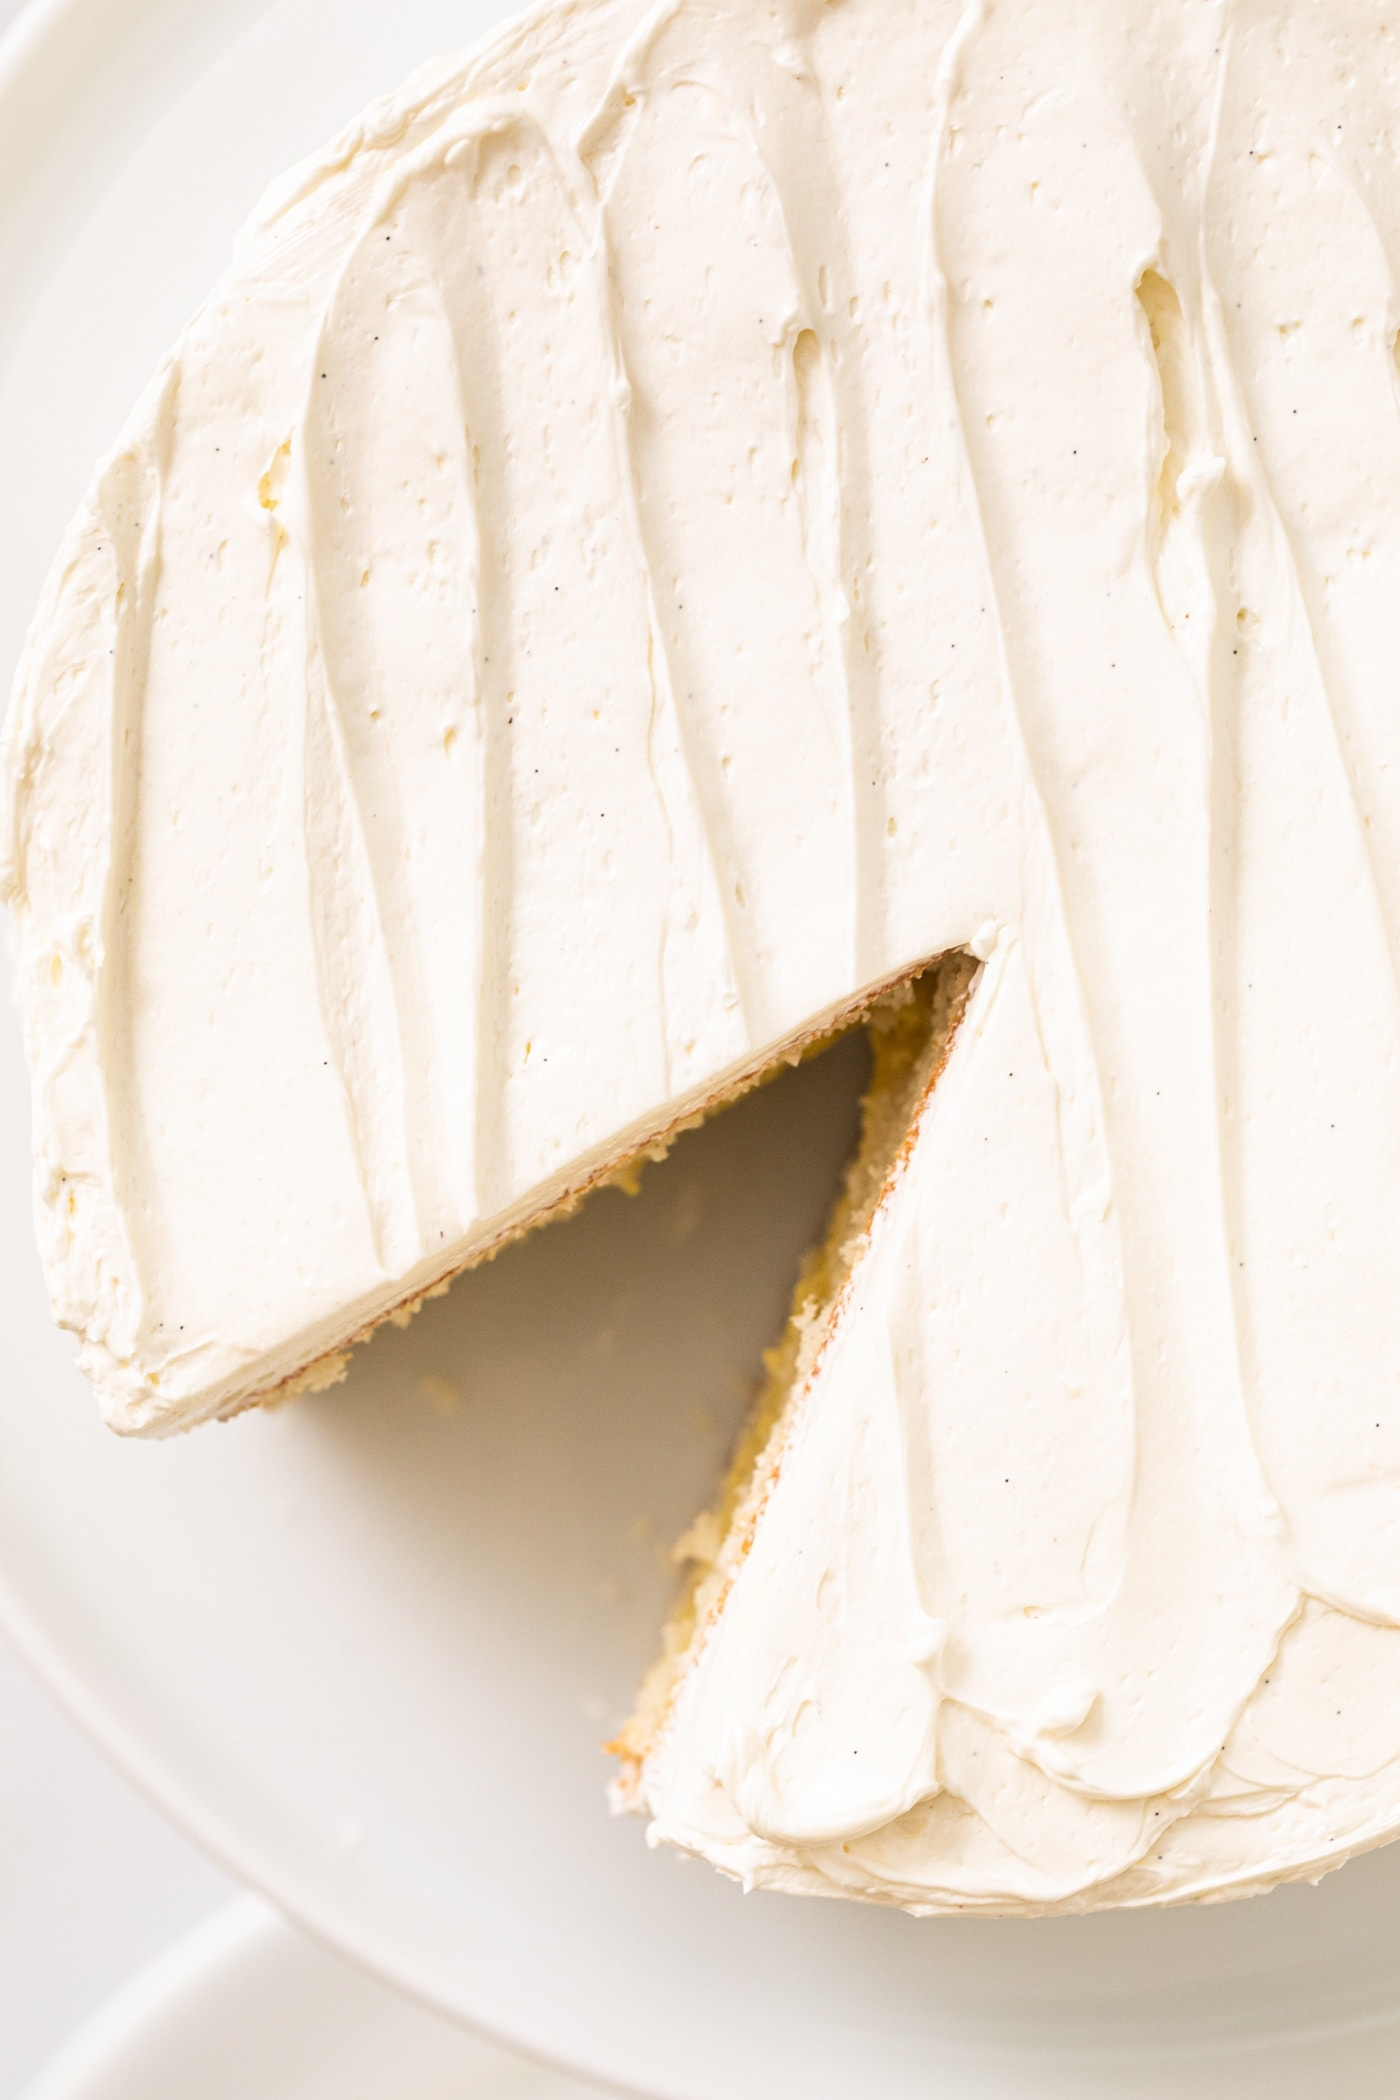 Top down view of white frosted cake with swirled effect on top sitting on white cake plate